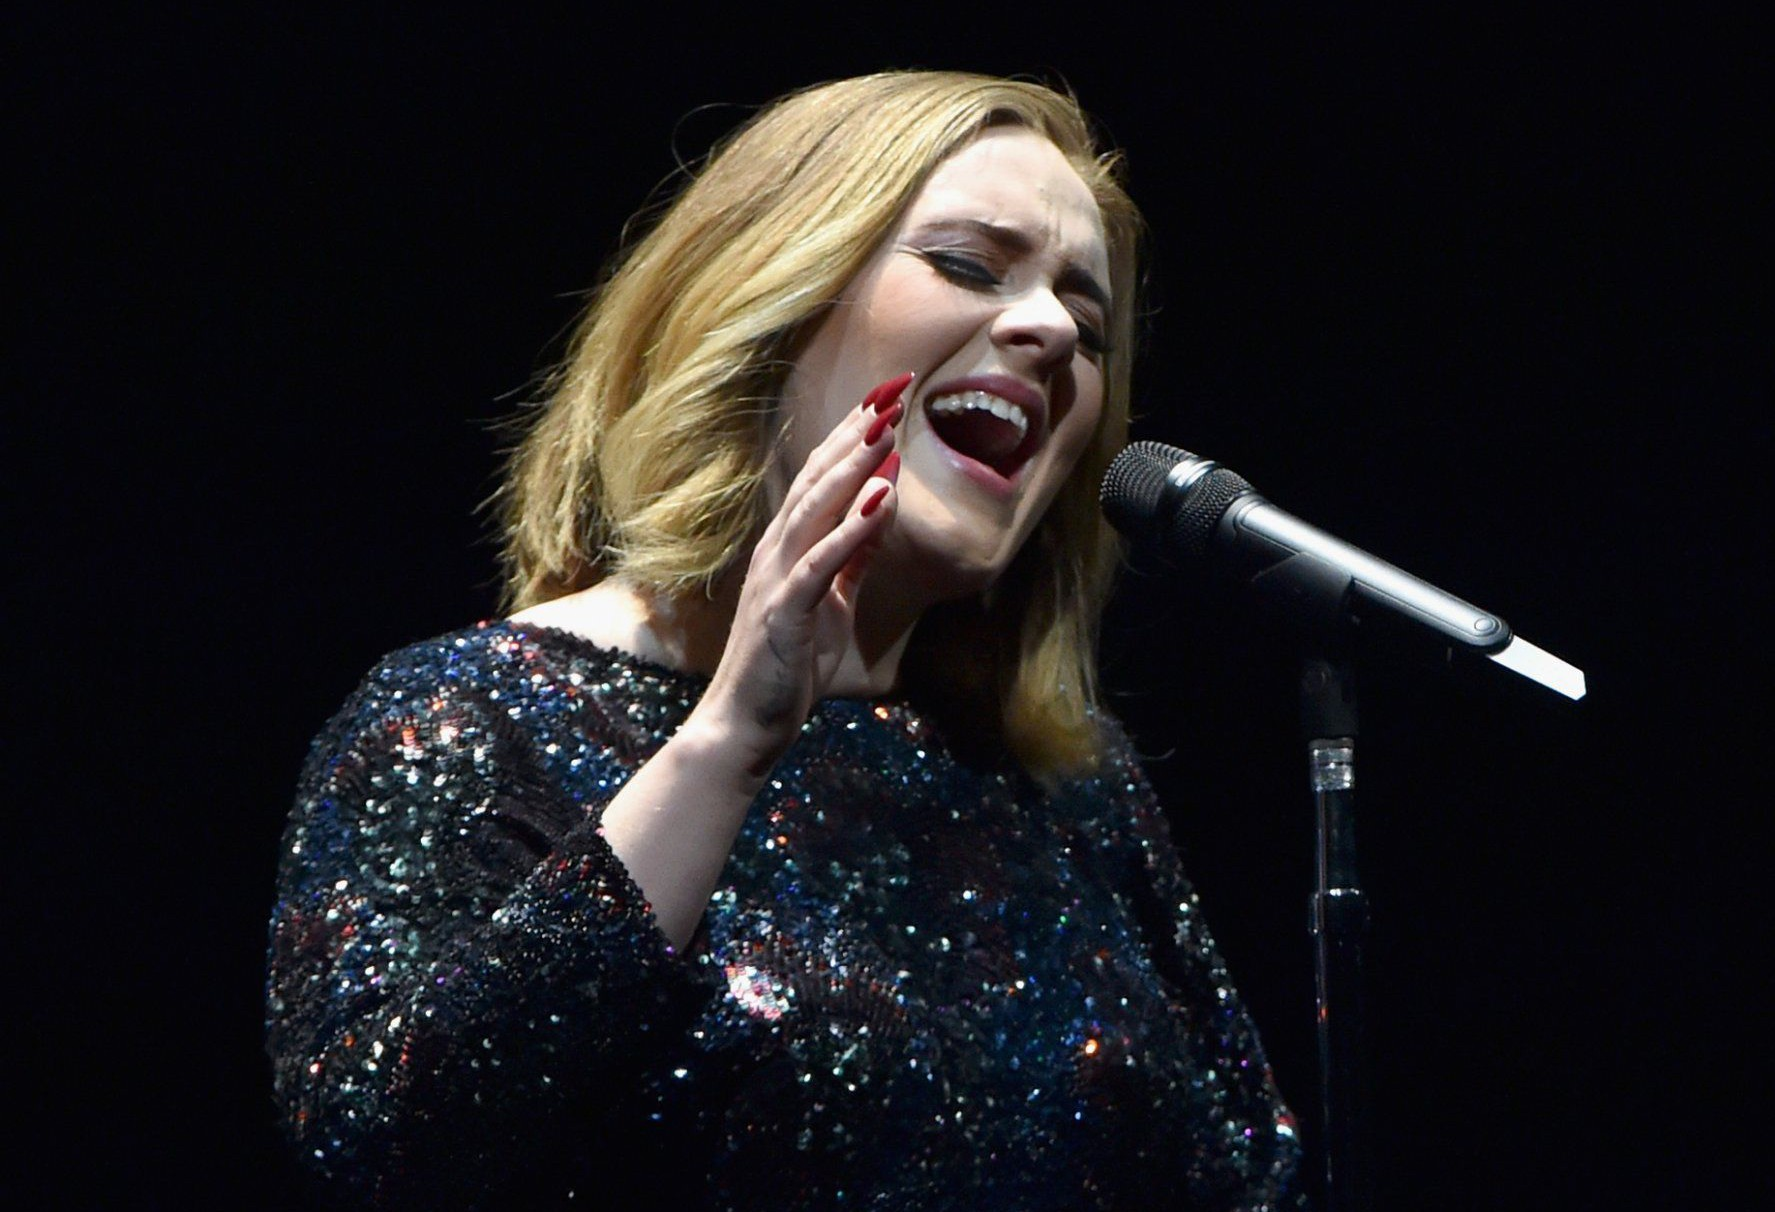 Adele has a strong message for those moaning about her headlining Glastonbury